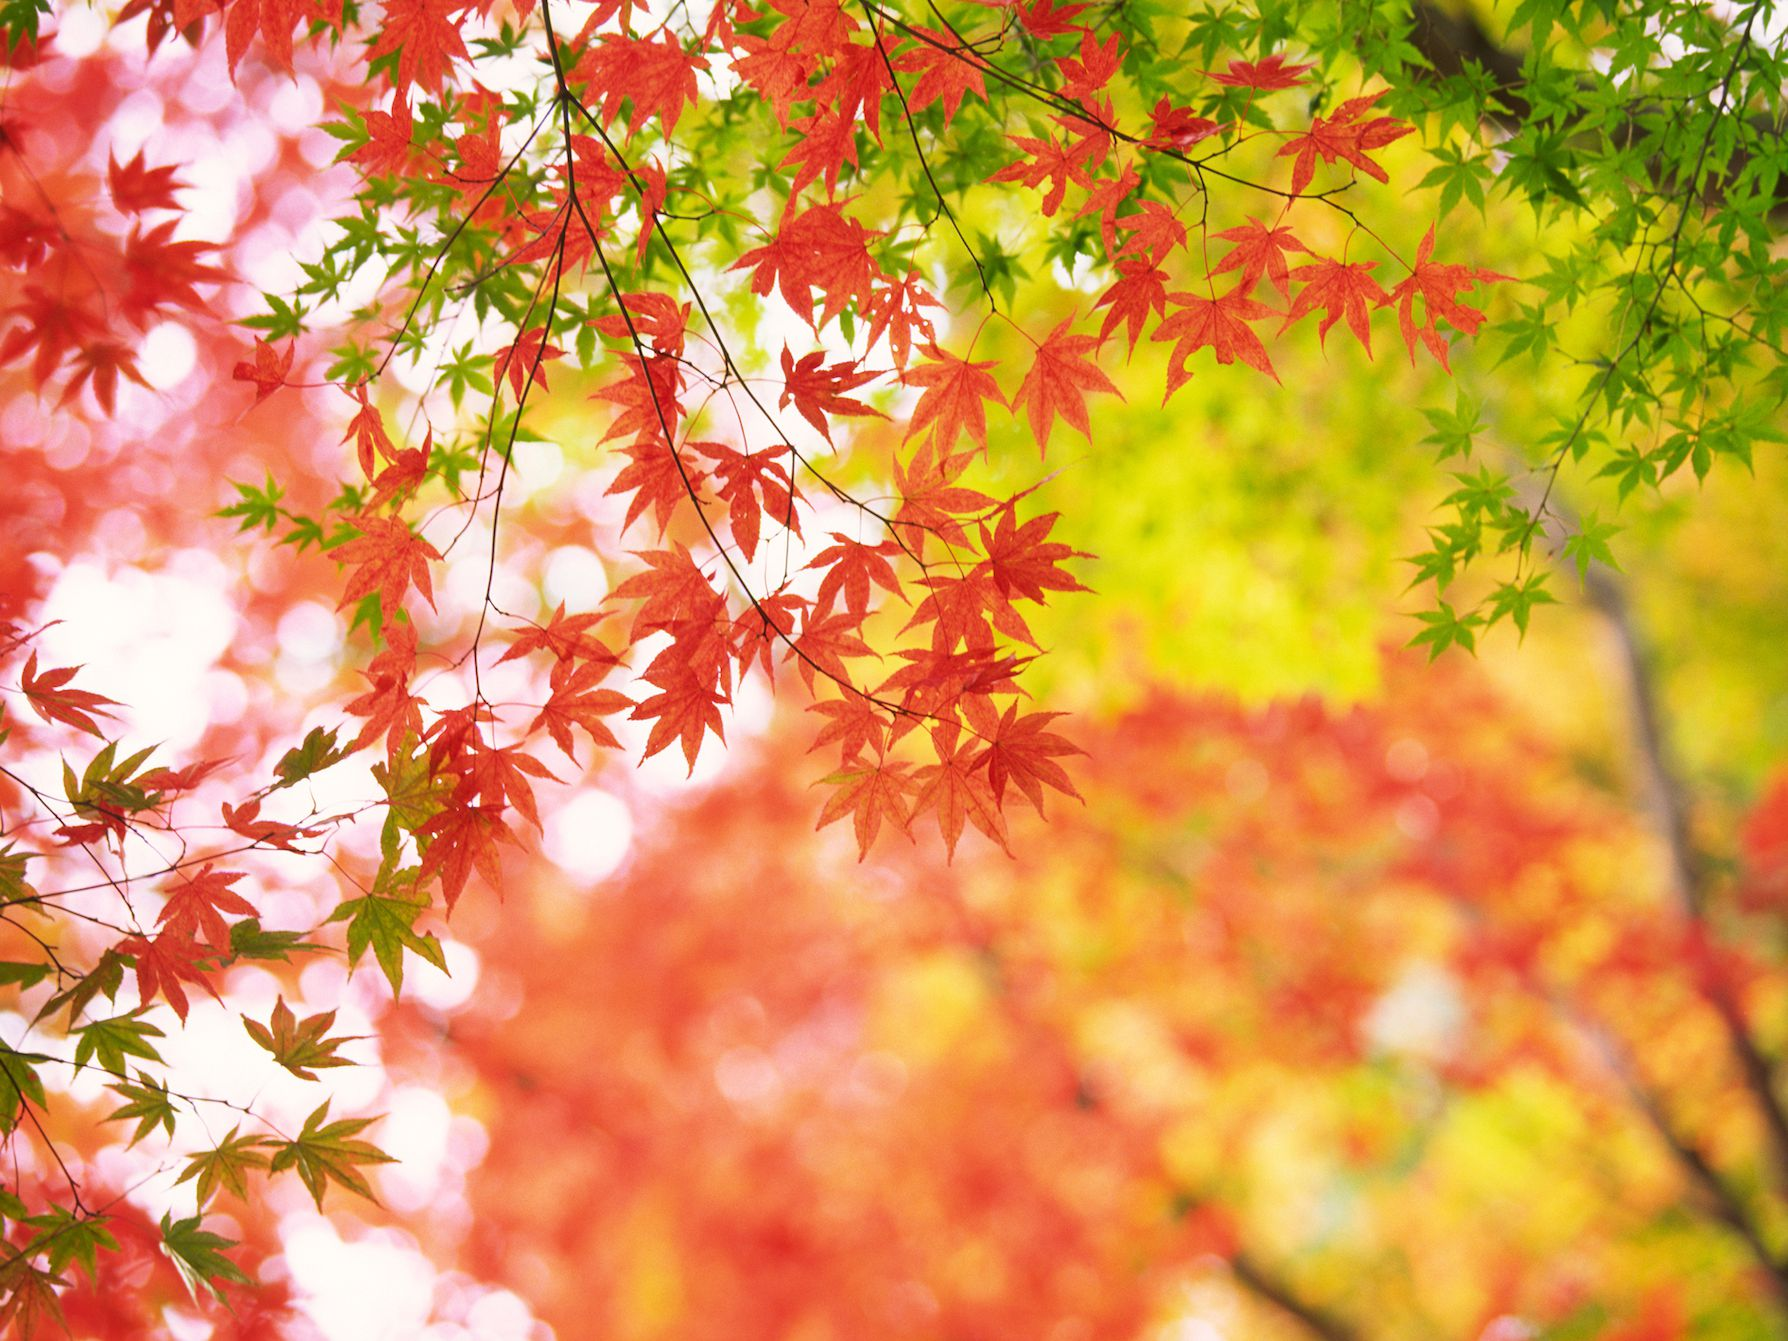 Why Some Red Japanese Maples Have Green Leaves